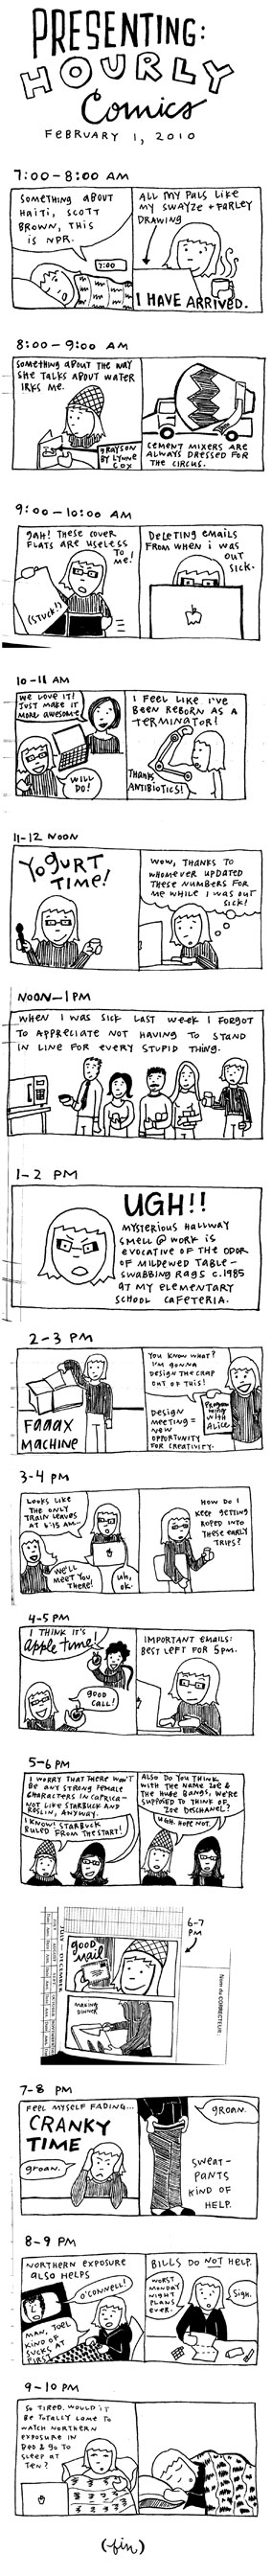 hourly comics 2010!